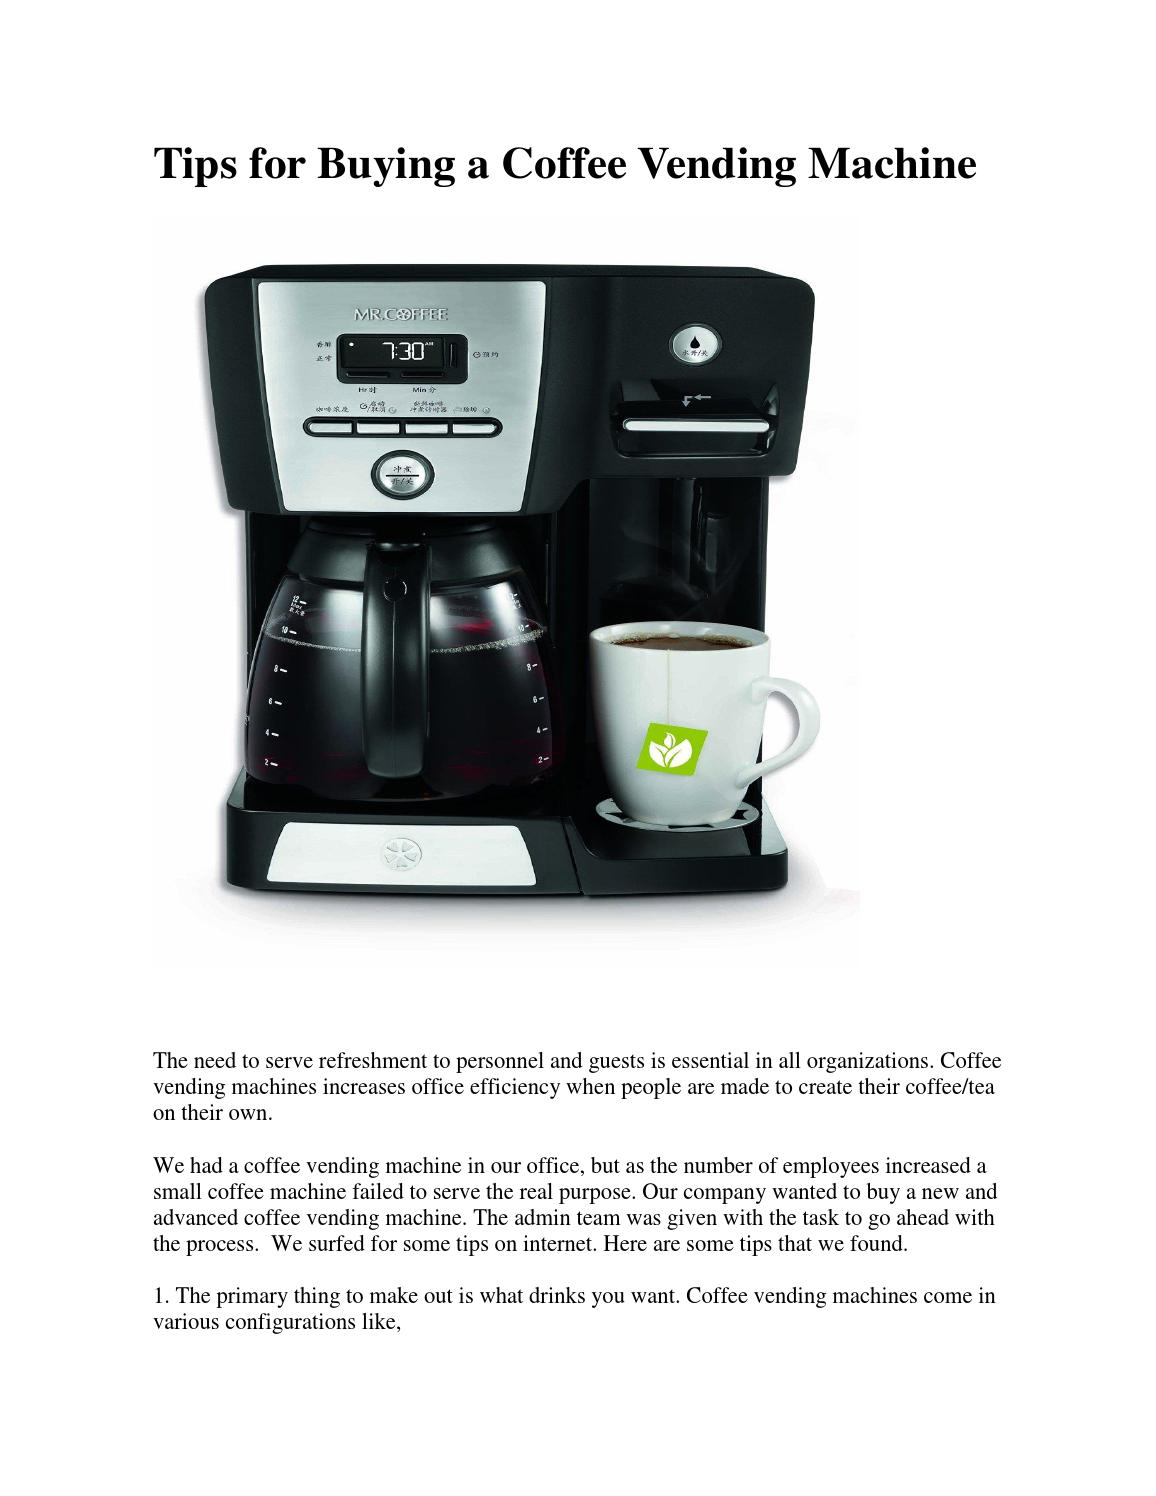 Tips for buying a coffee vending machine by Shan Singh - Issuu